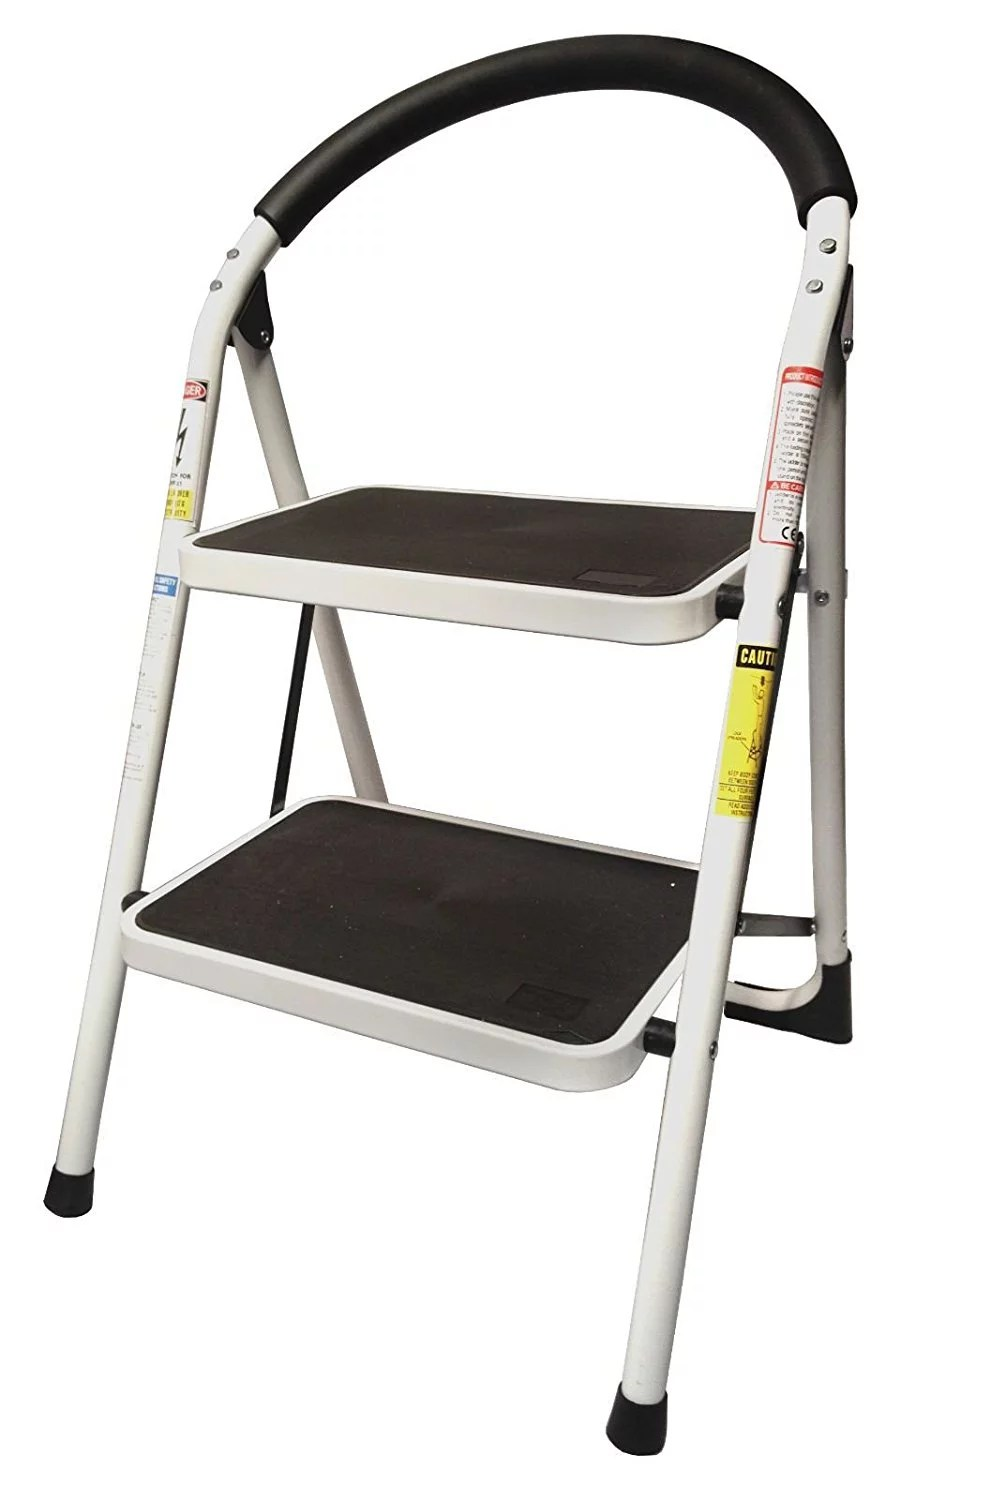 kitchen ladder corner shelving unit stepup heavy duty steel reinforced folding 2 step stool 330 lbs capacity walmart com